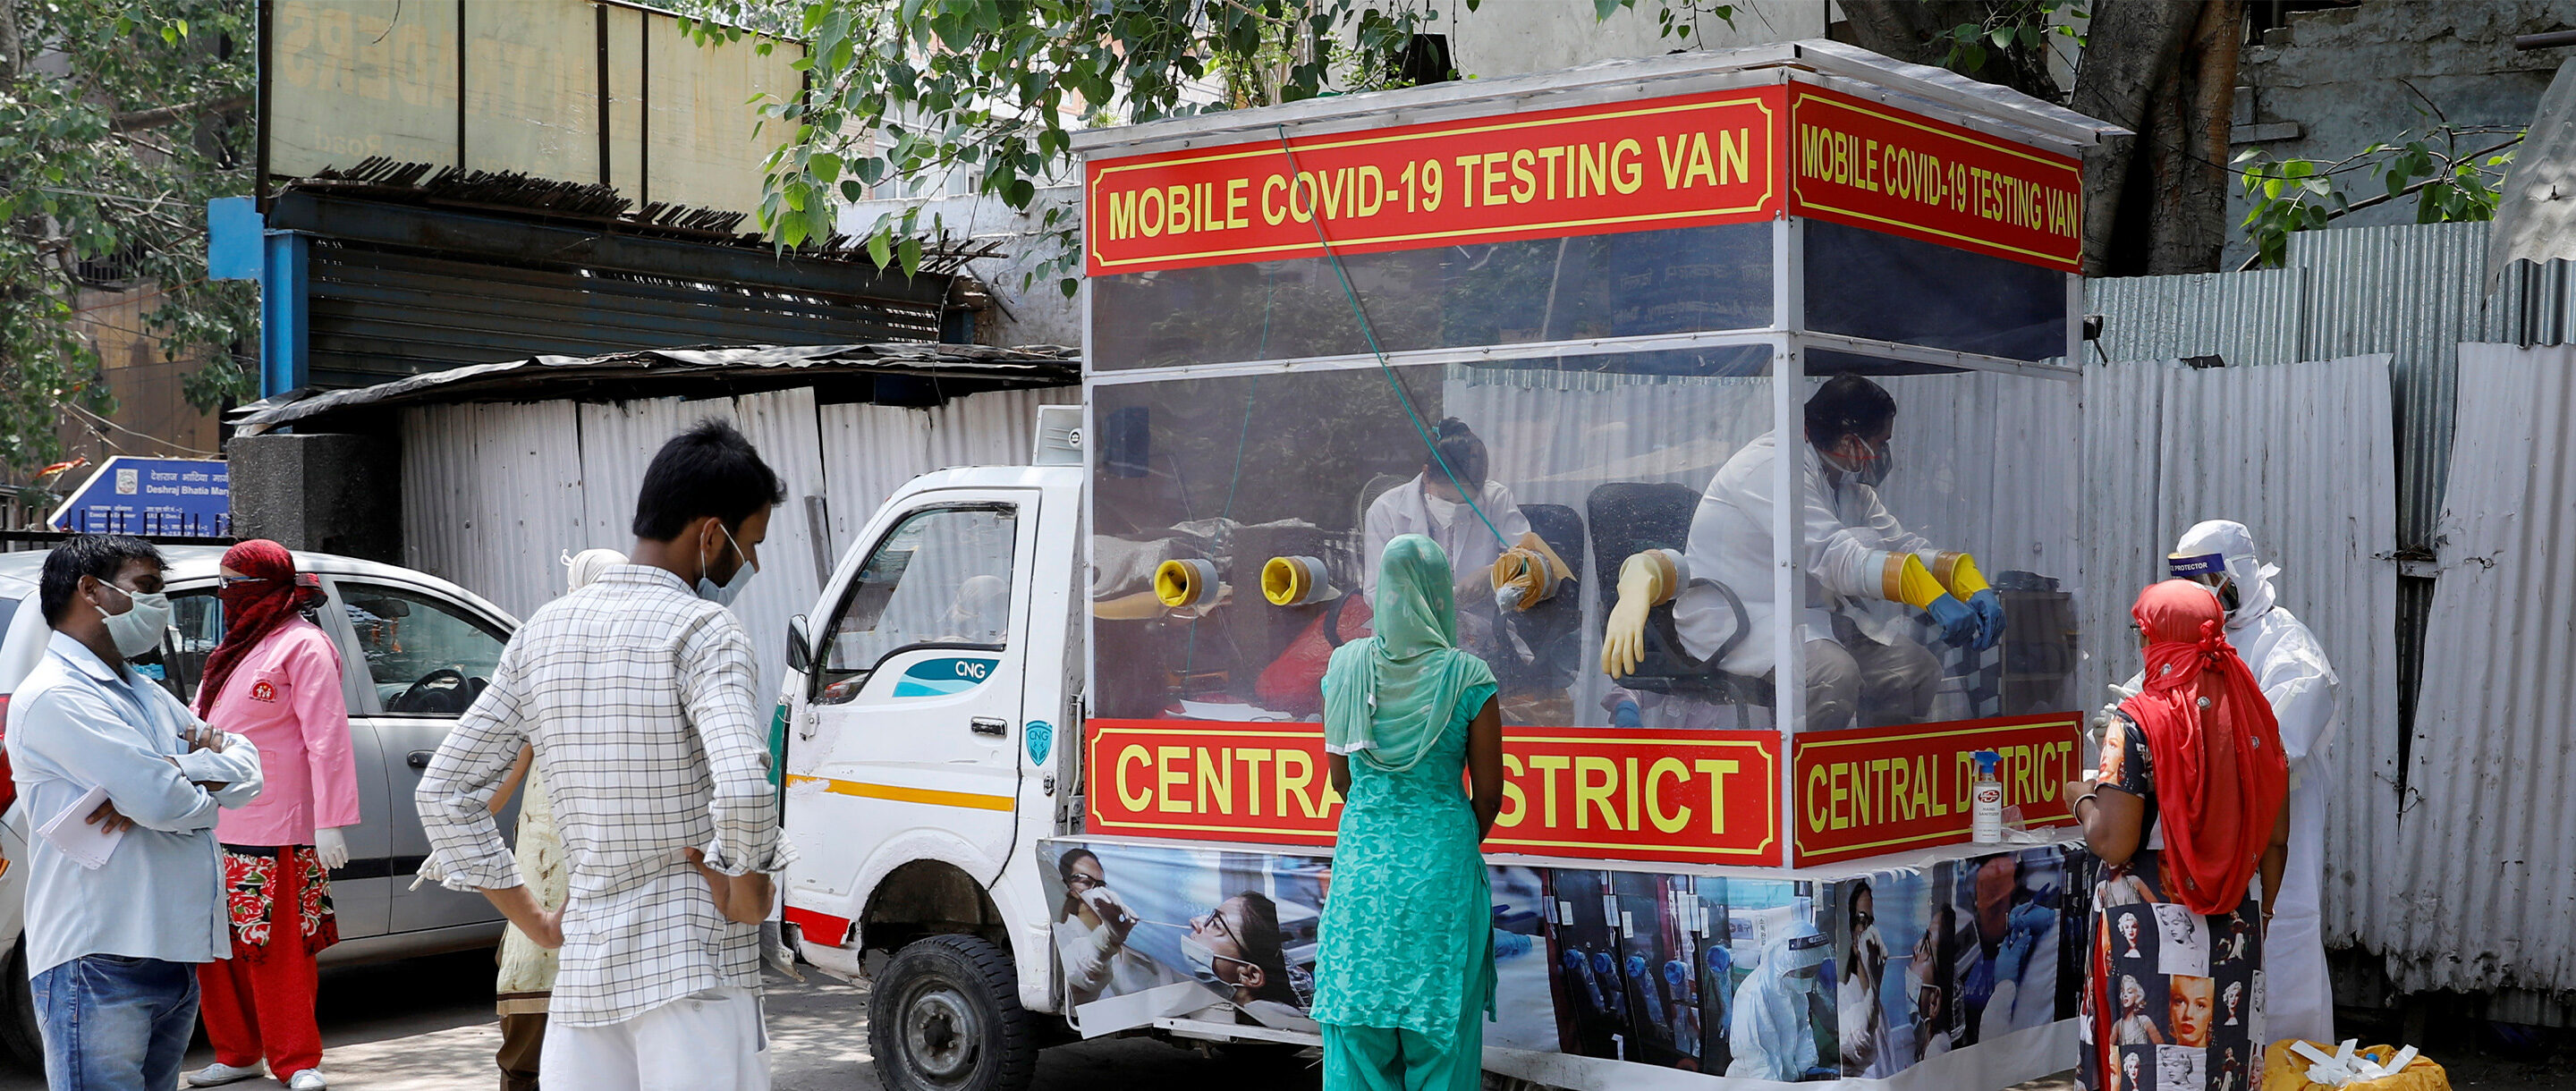 People in India stand near a red van that serves as a mobile testing center for COVID-19 .